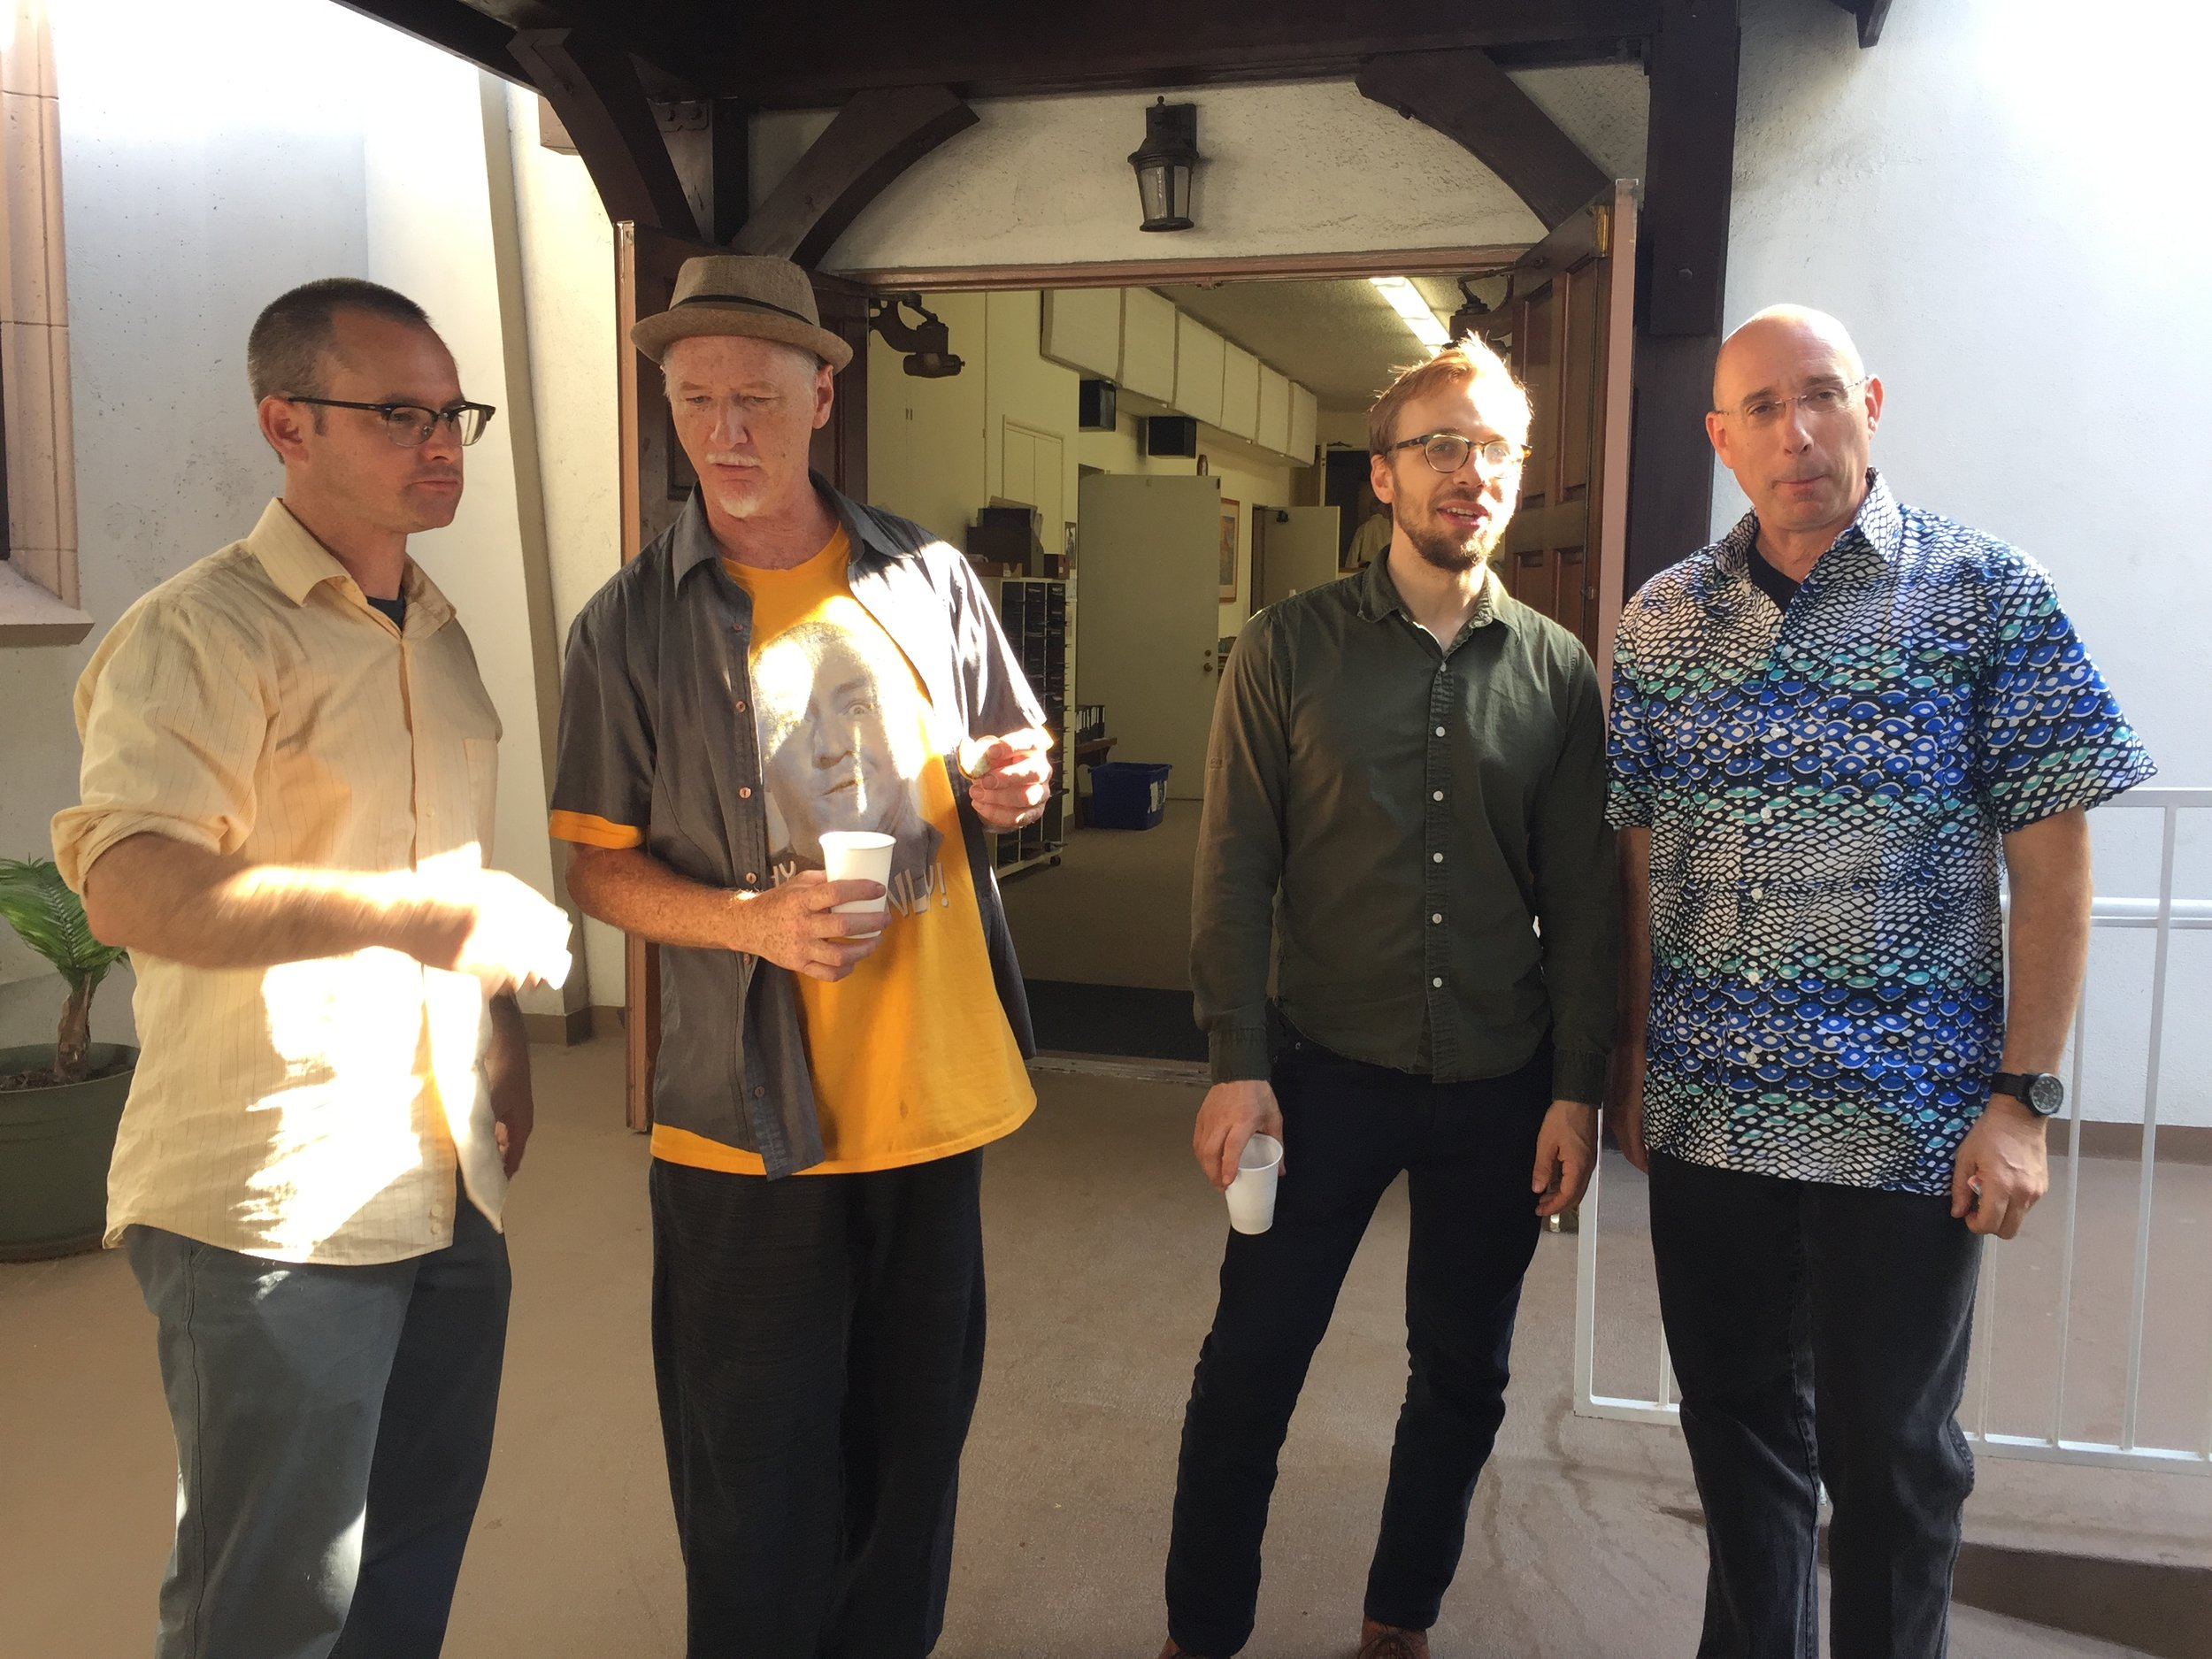 Brad Dutz 4tet - Founded in 2005, this whimsical ensemble has released six albums and performed at numerous Southern California venues. The ensemble features Dutz on percussion, Paul Sherman on oboe/english horn, Brian Walsh on bass clarinet, and Chris Votek on cello.[Read More]…